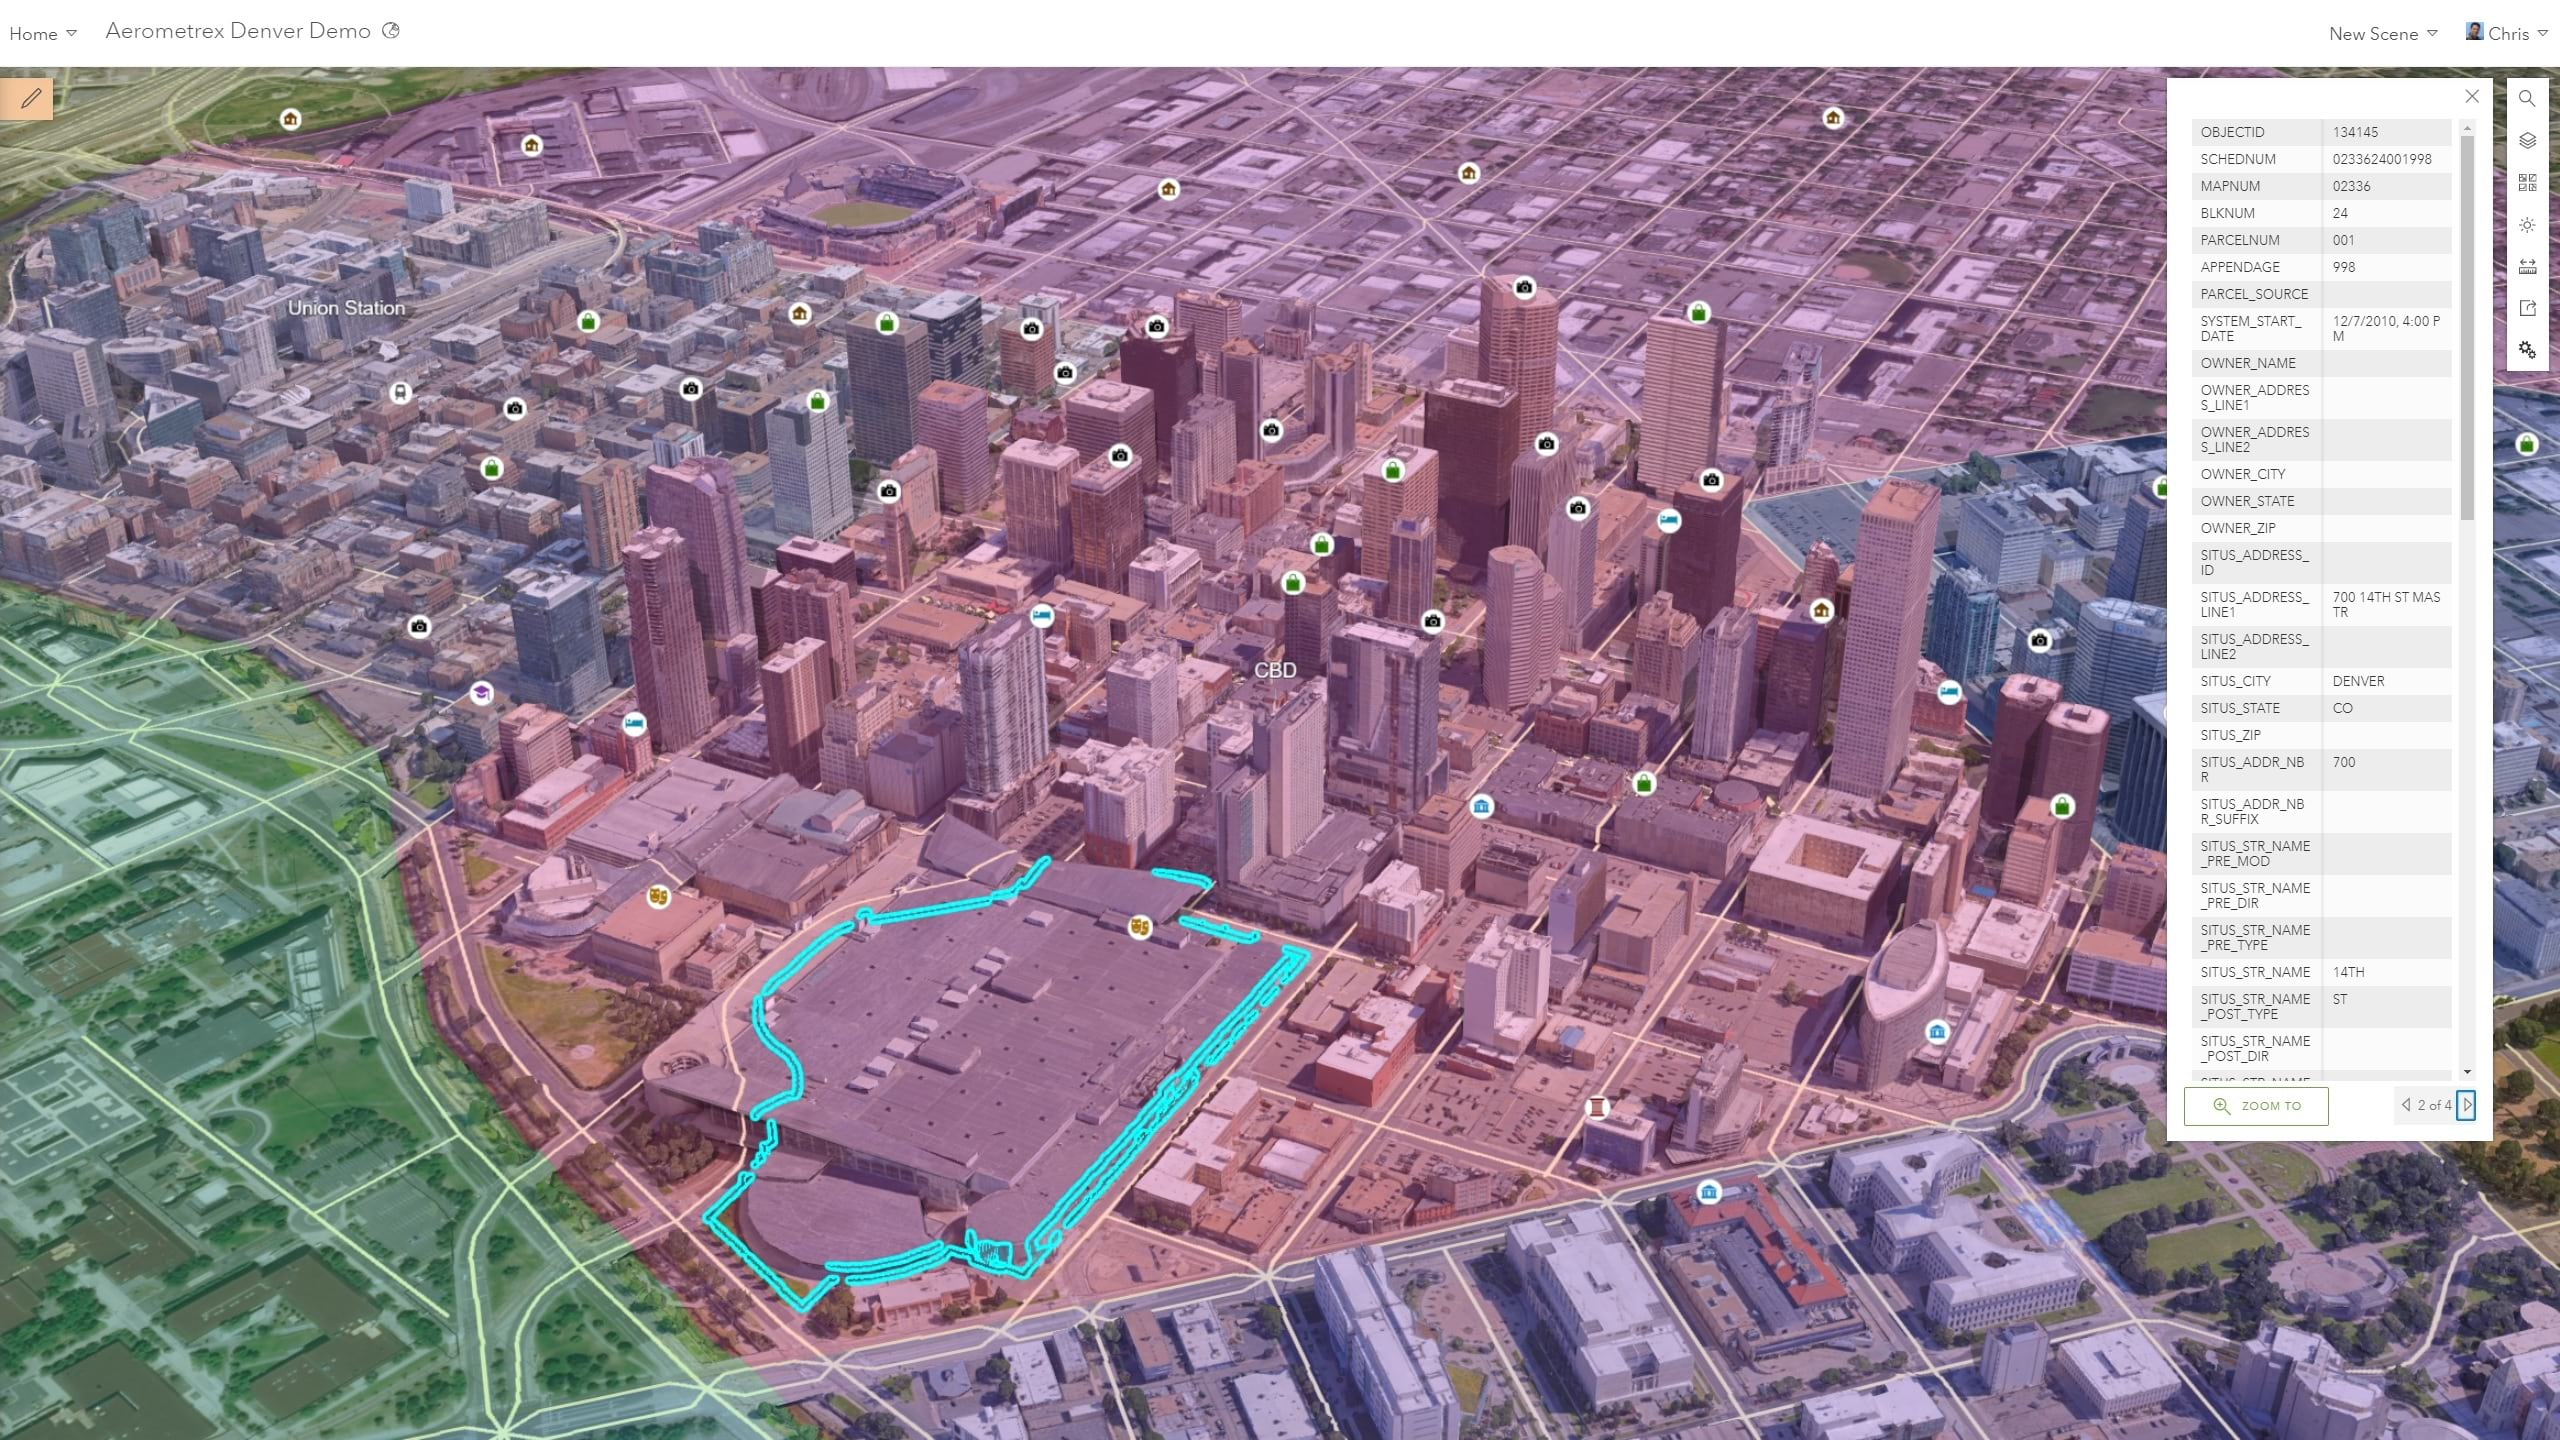 GIS information overlaid on Aerometrex I3S mesh for Denver provides a powerful web dashboard for cities